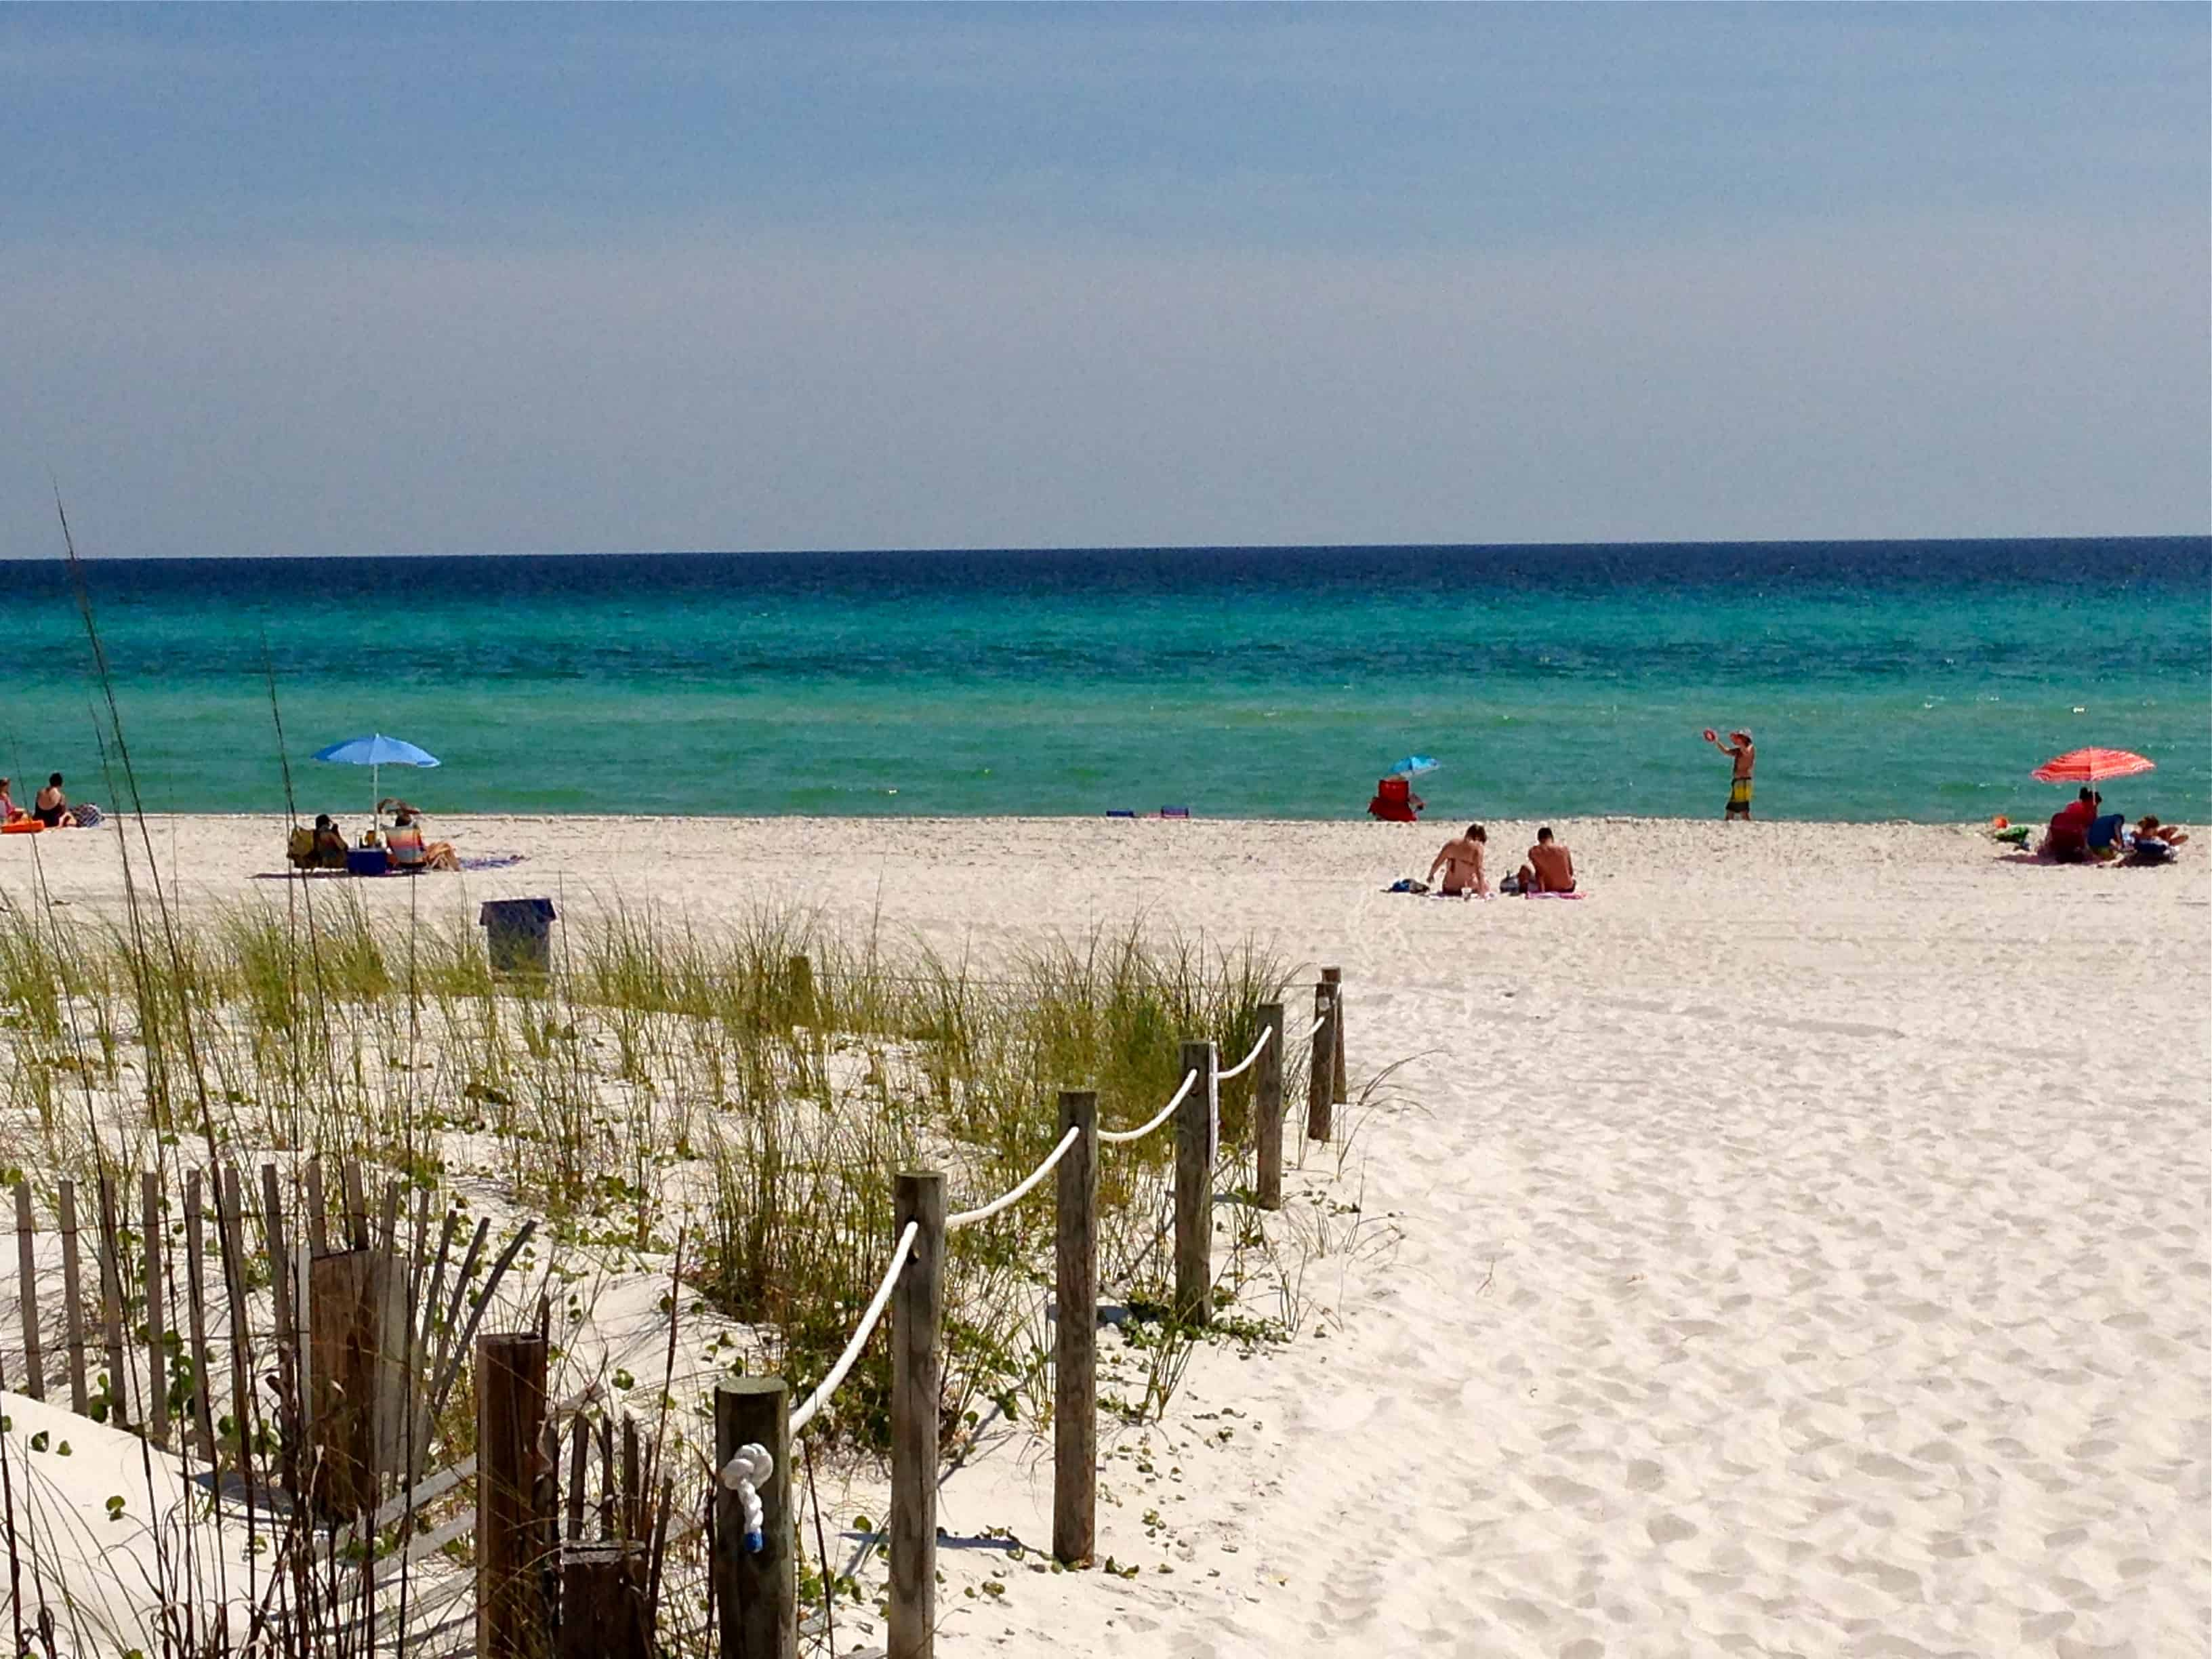 Rick Seltzer Park, Panama City Florida, Emerald Coast Beaches, Panama City beaches